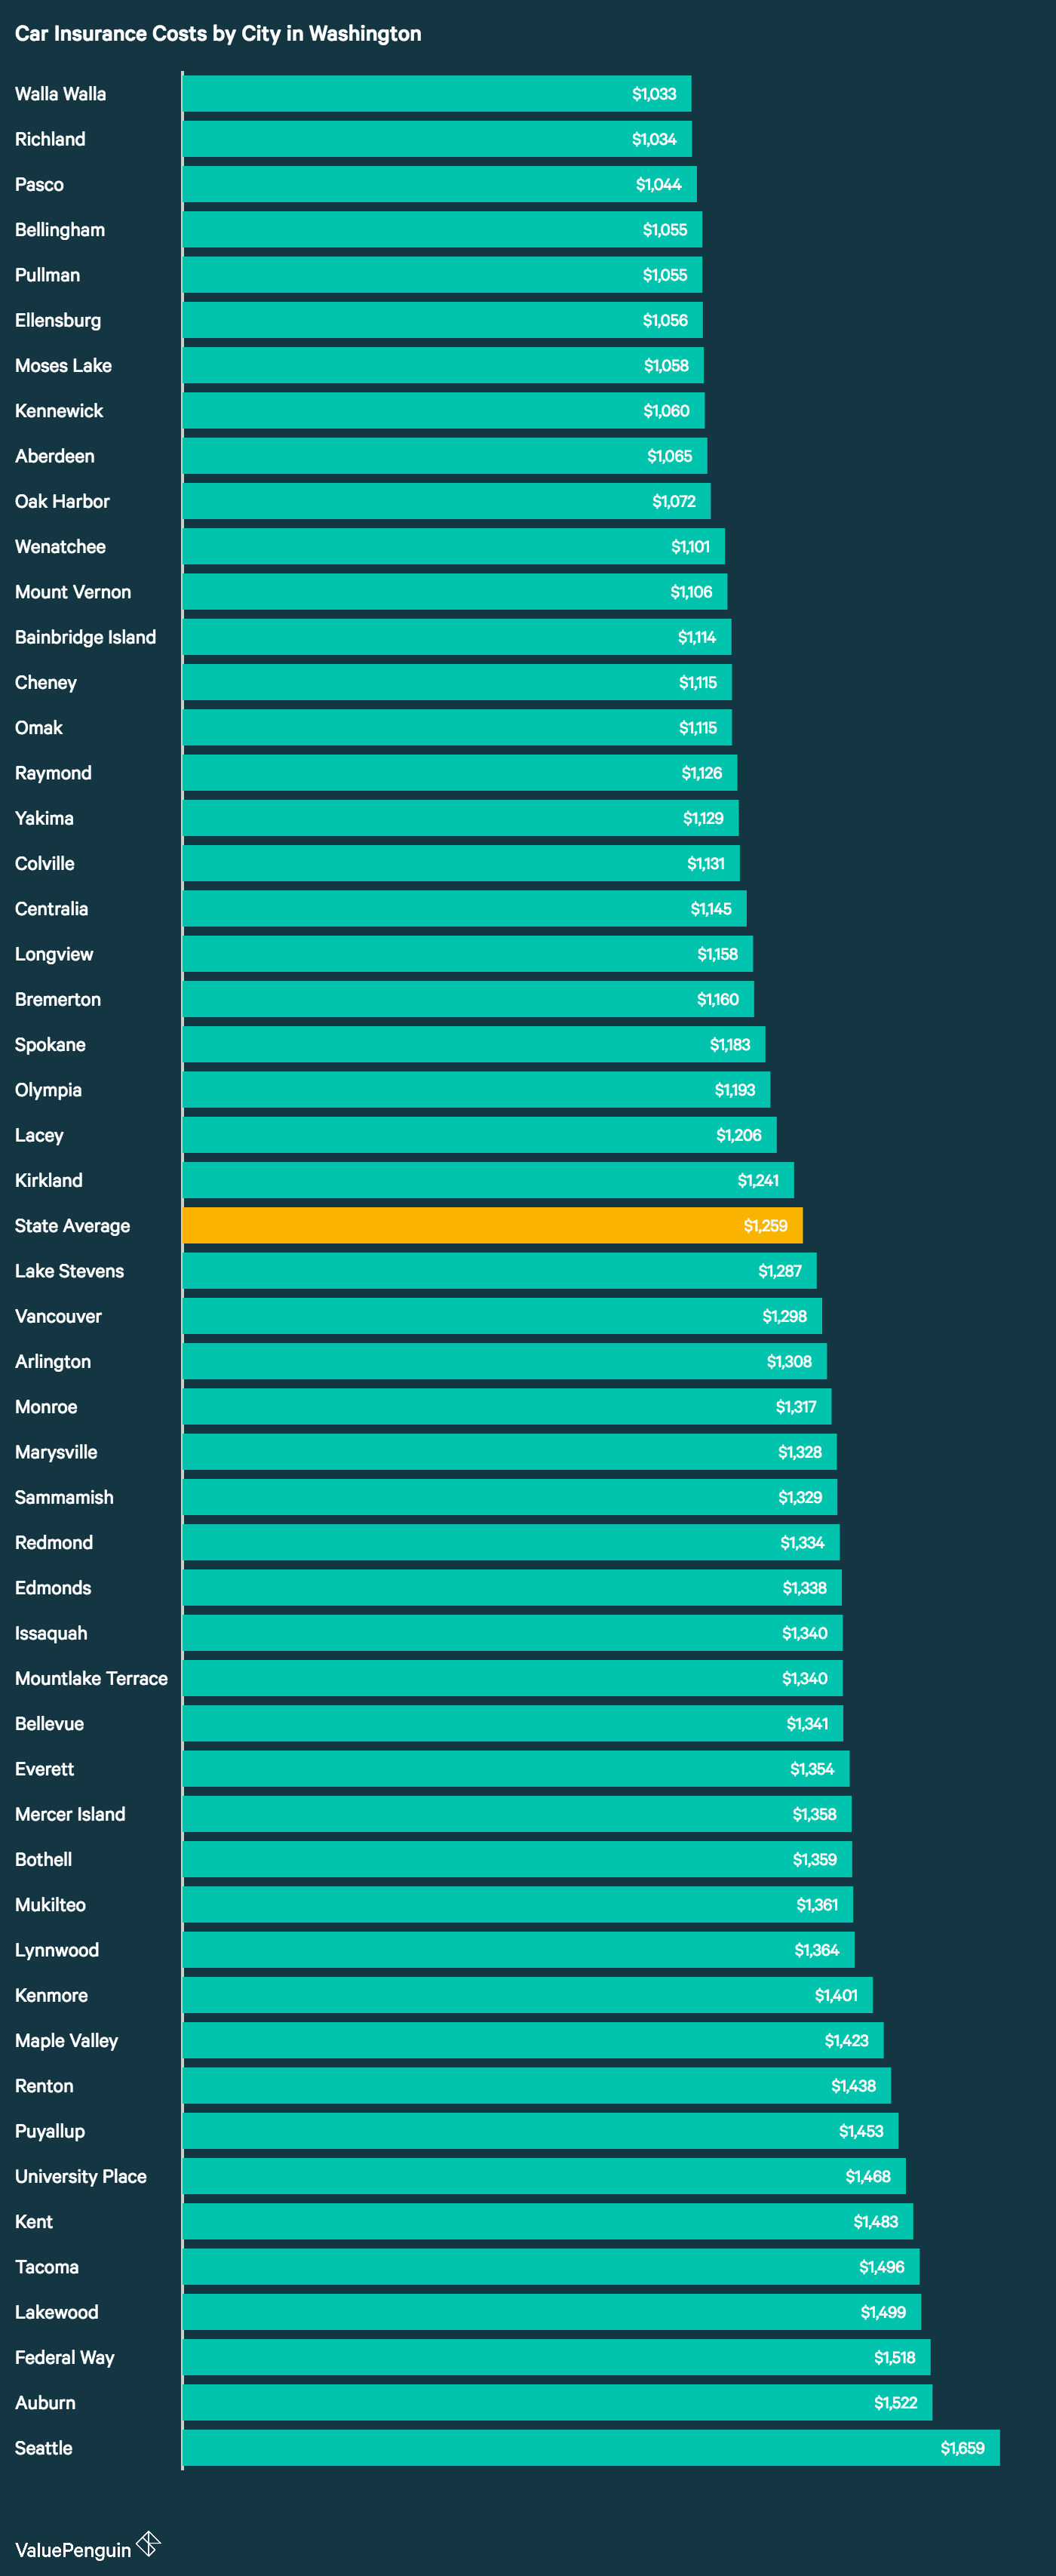 This chart ranks the average cost of car insurance for 52 Washington cities from cheapest to most expensive.